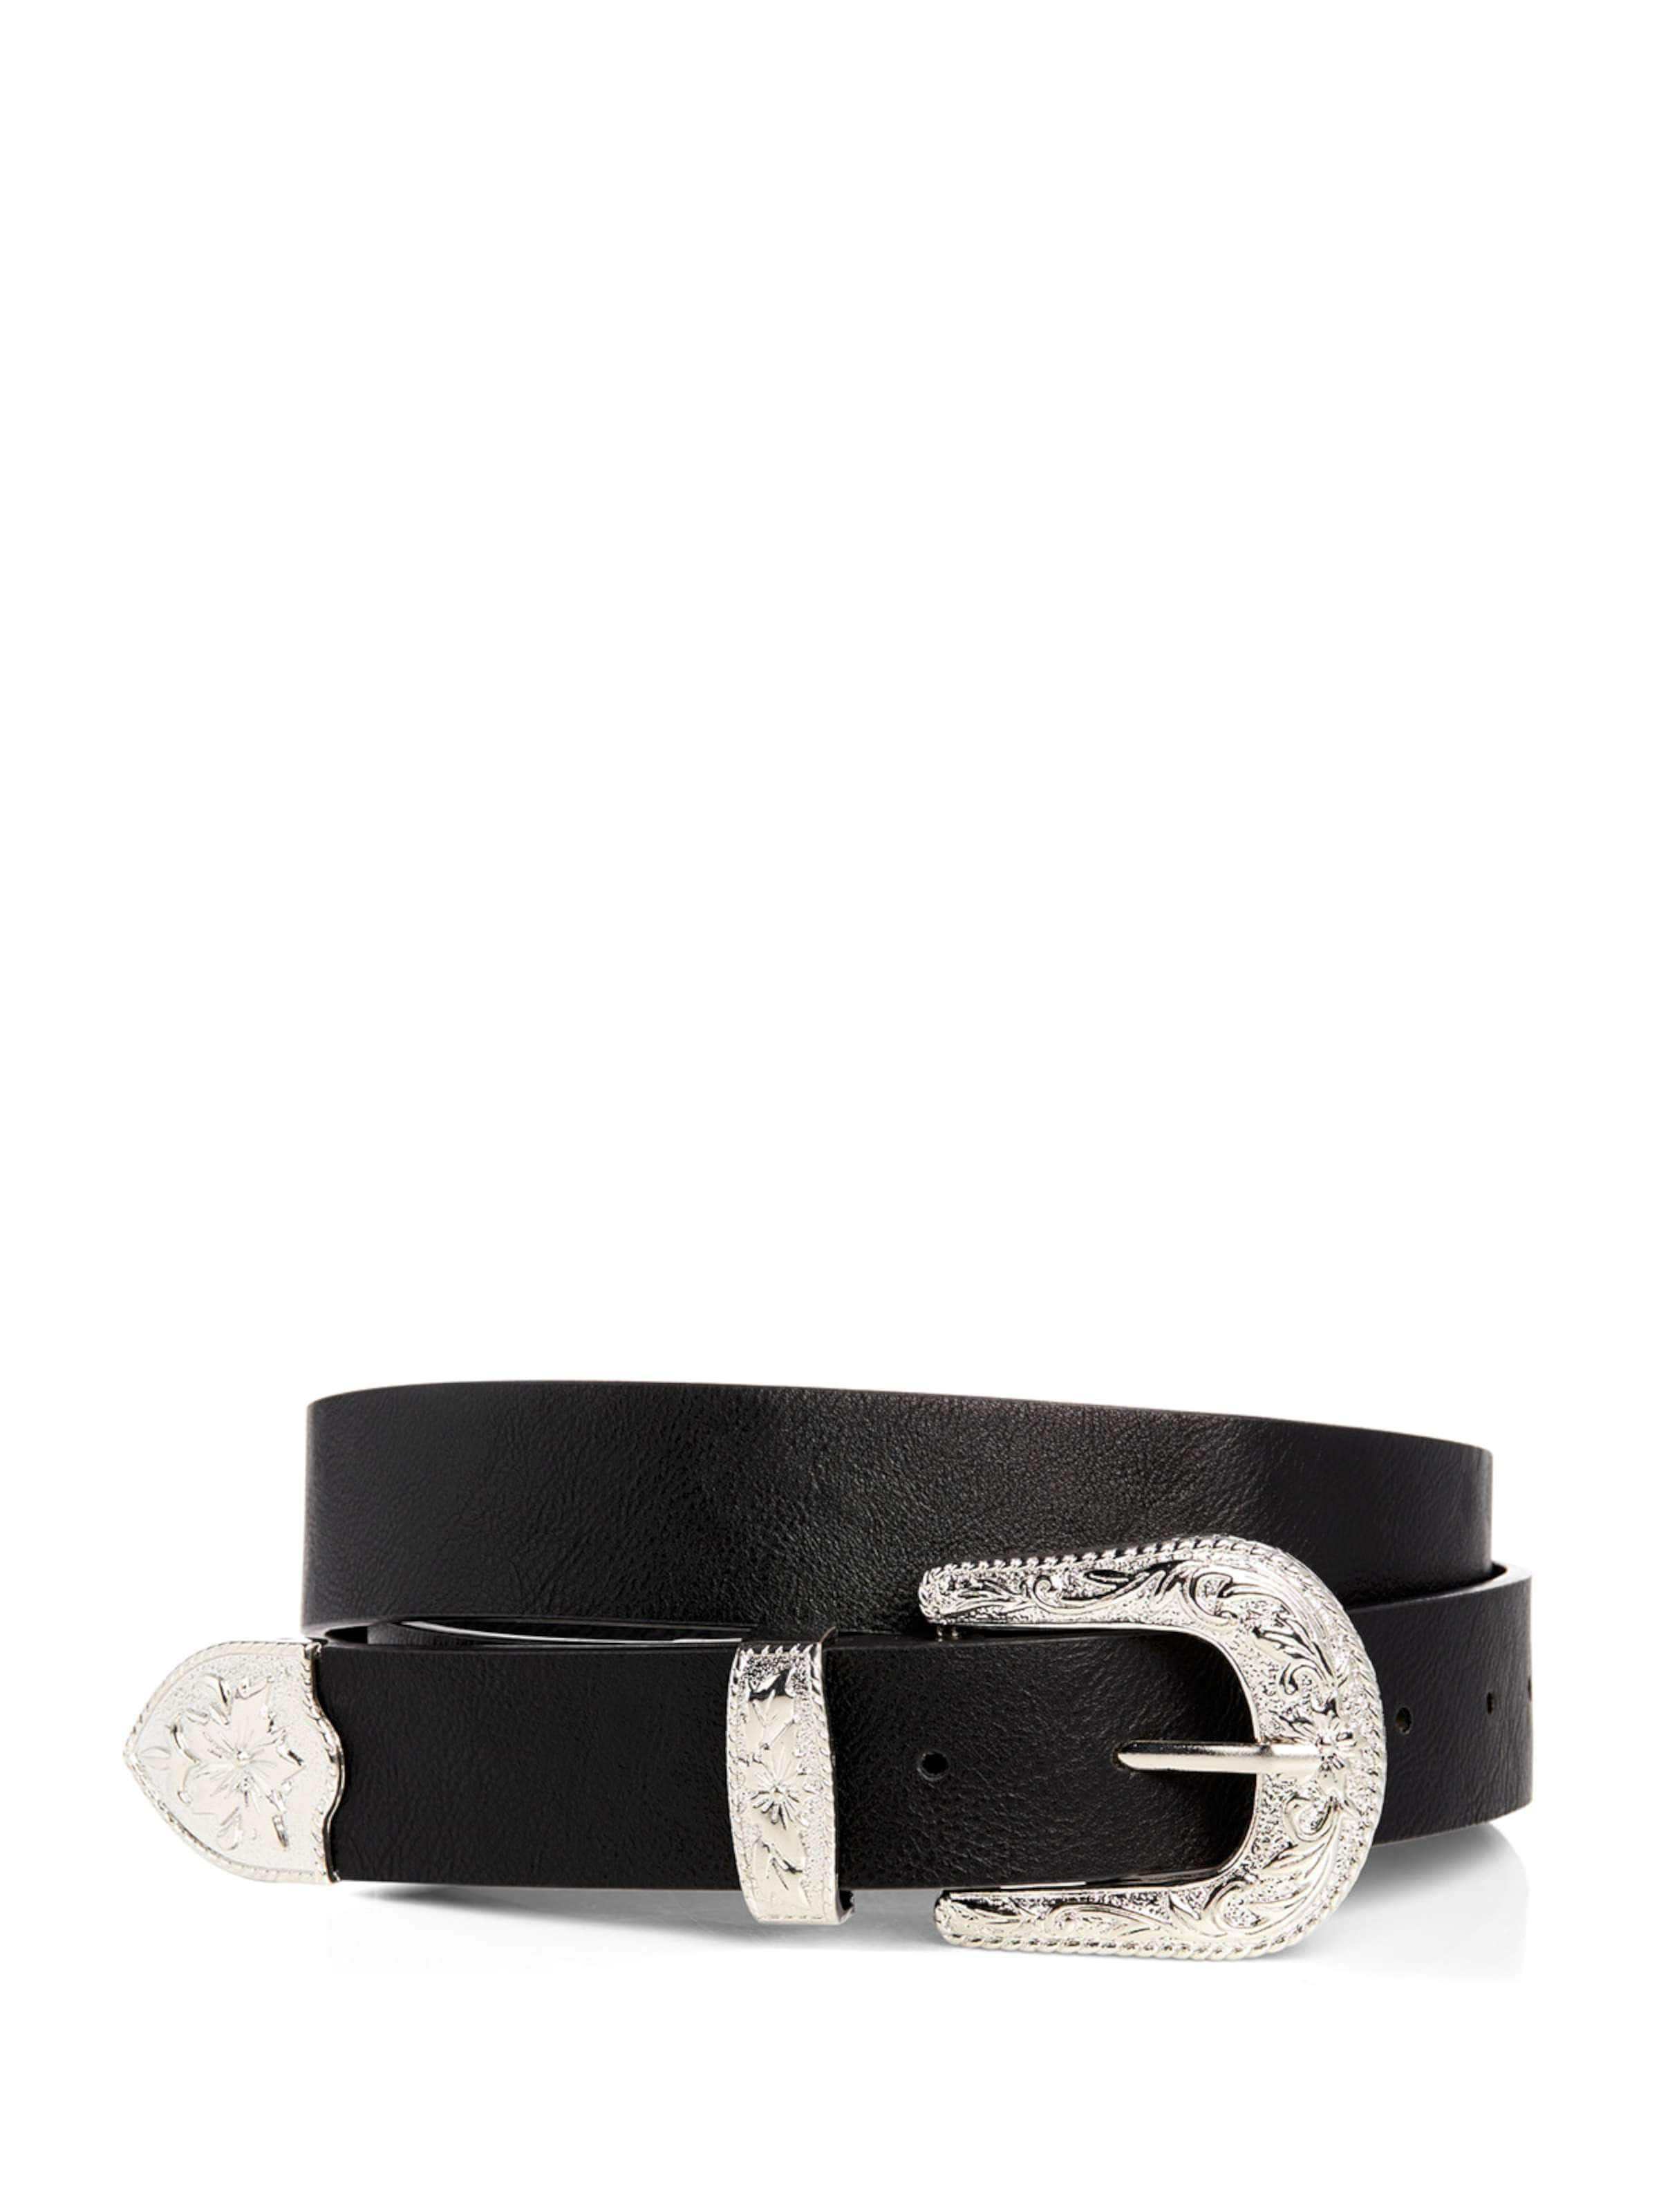 d8007788b644 ... Image for Large Buckle Western Belt from Dotti Online